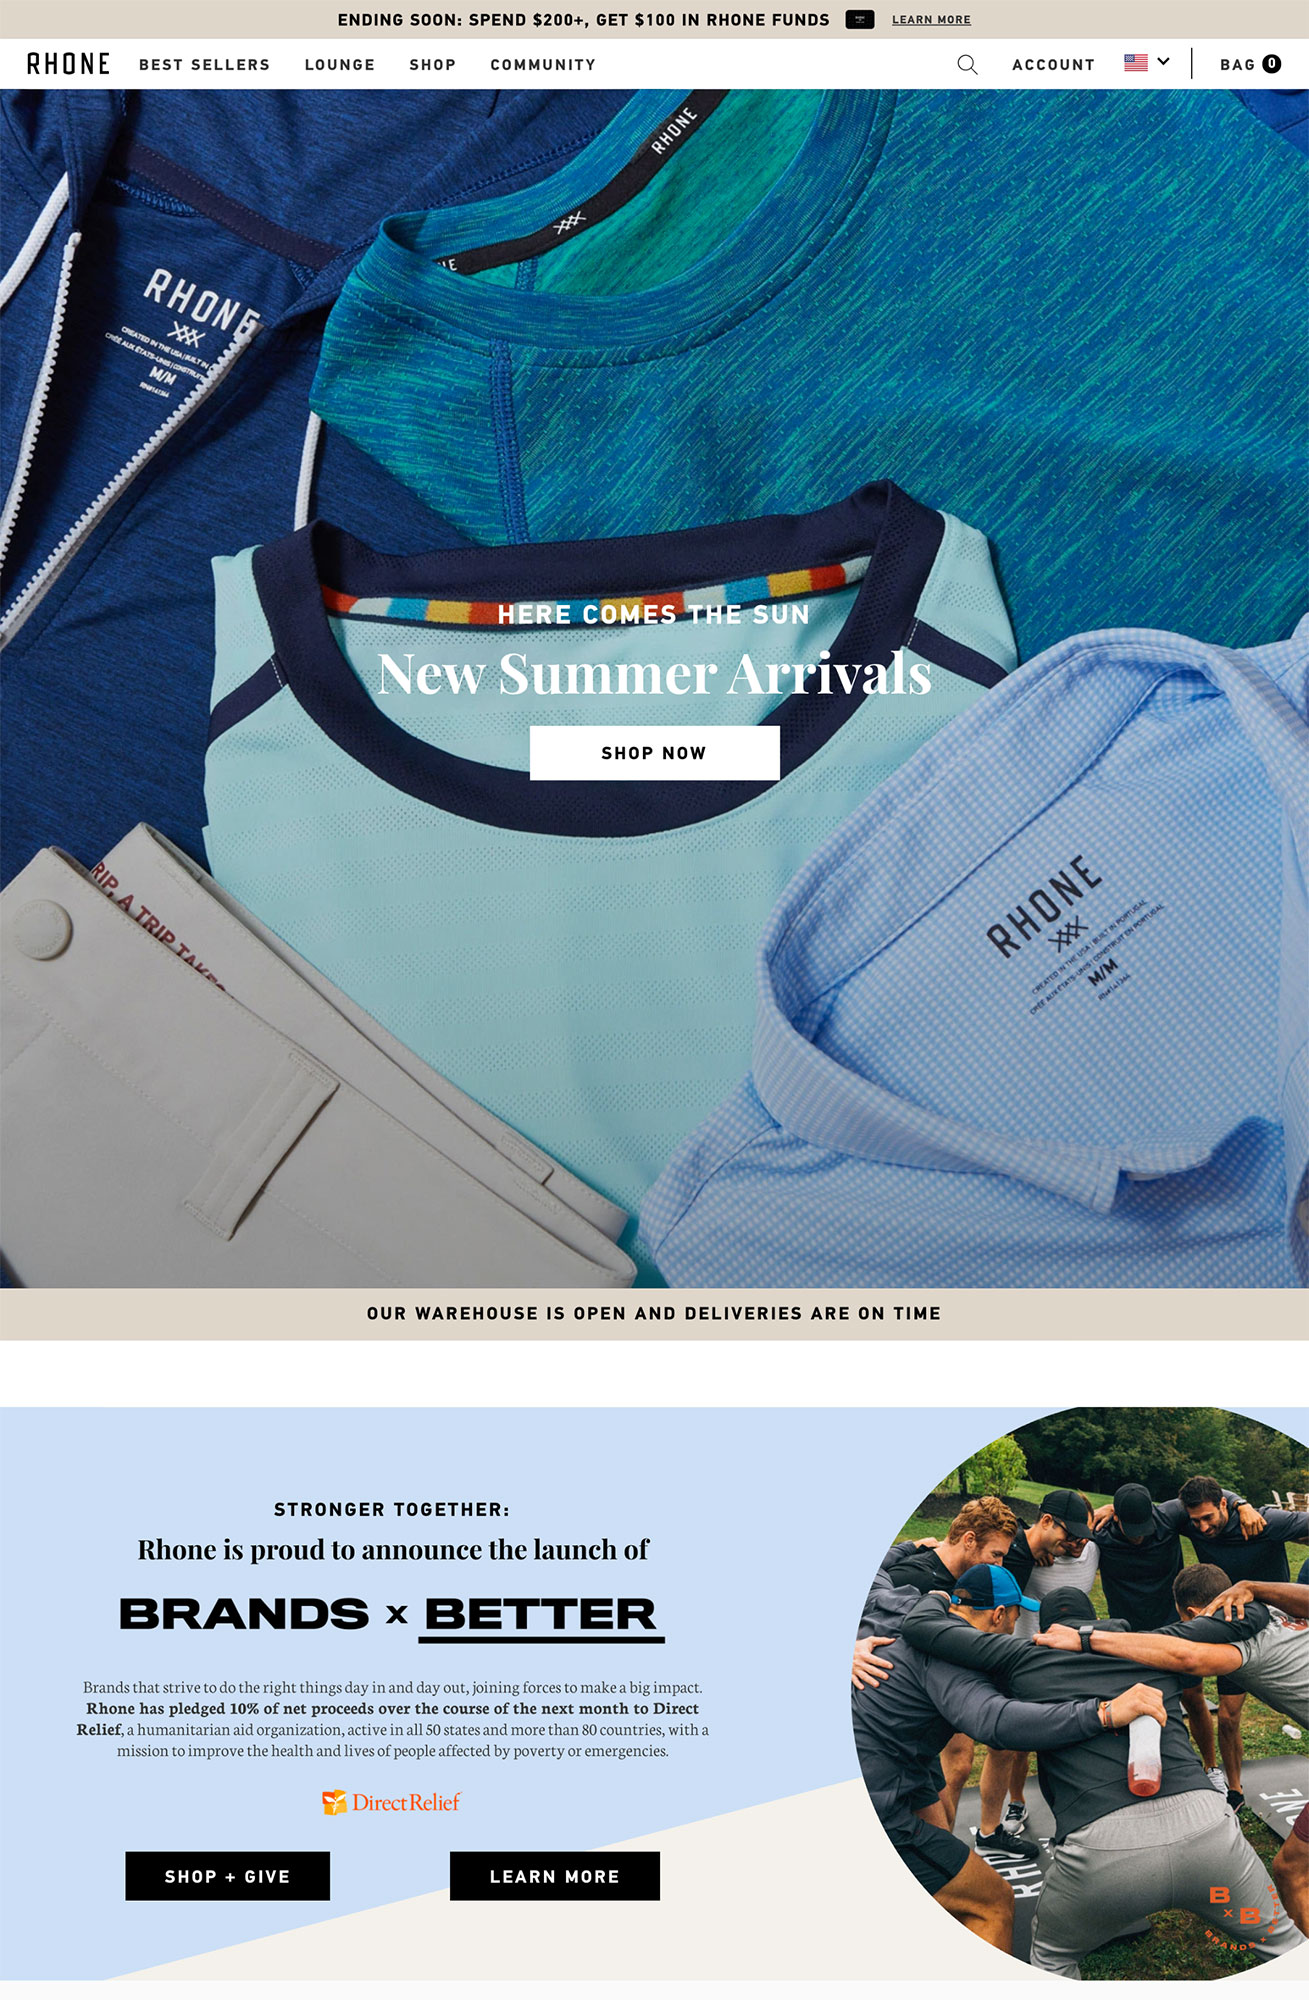 Rhone promotes its summer line and its charitable initiative.